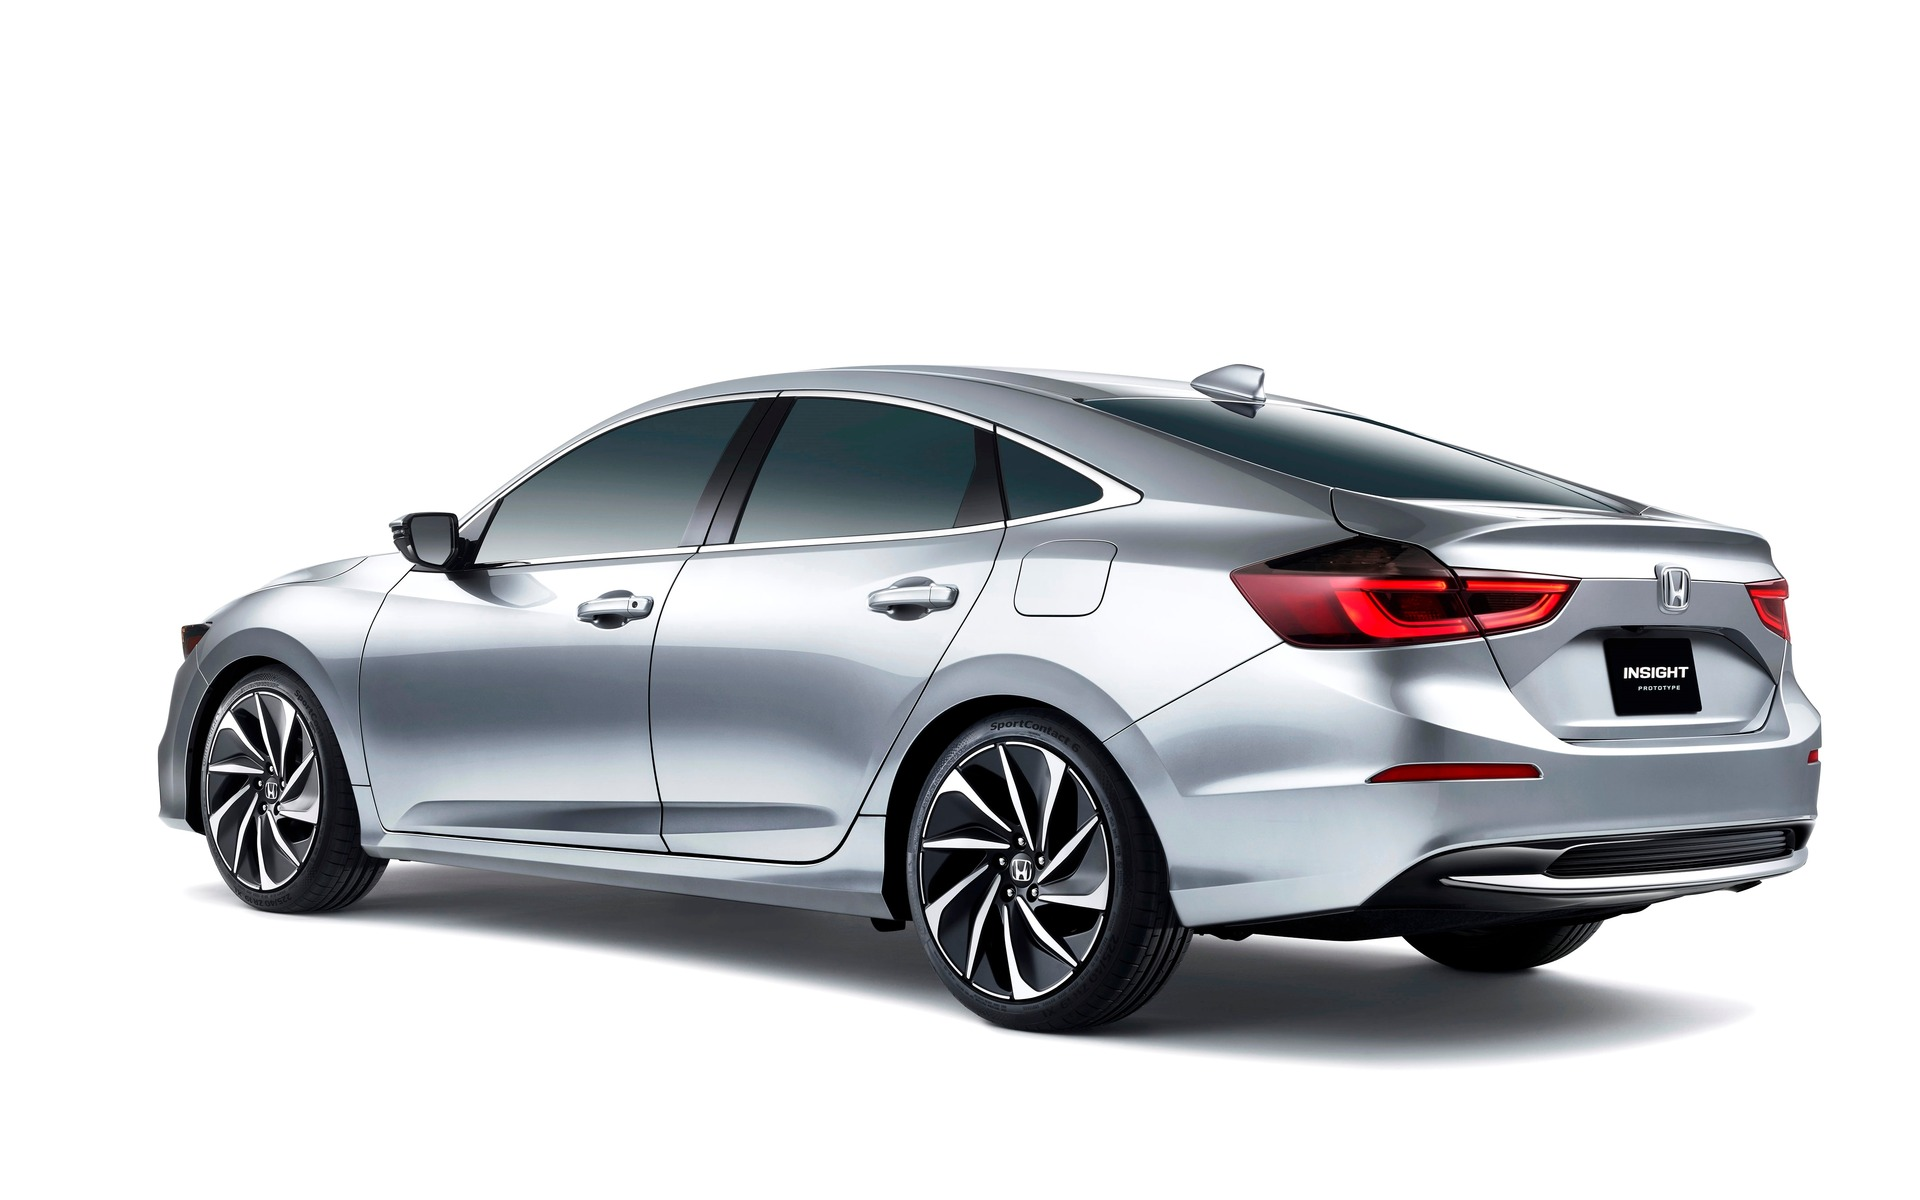 2019 honda insight preview the car guide. Black Bedroom Furniture Sets. Home Design Ideas